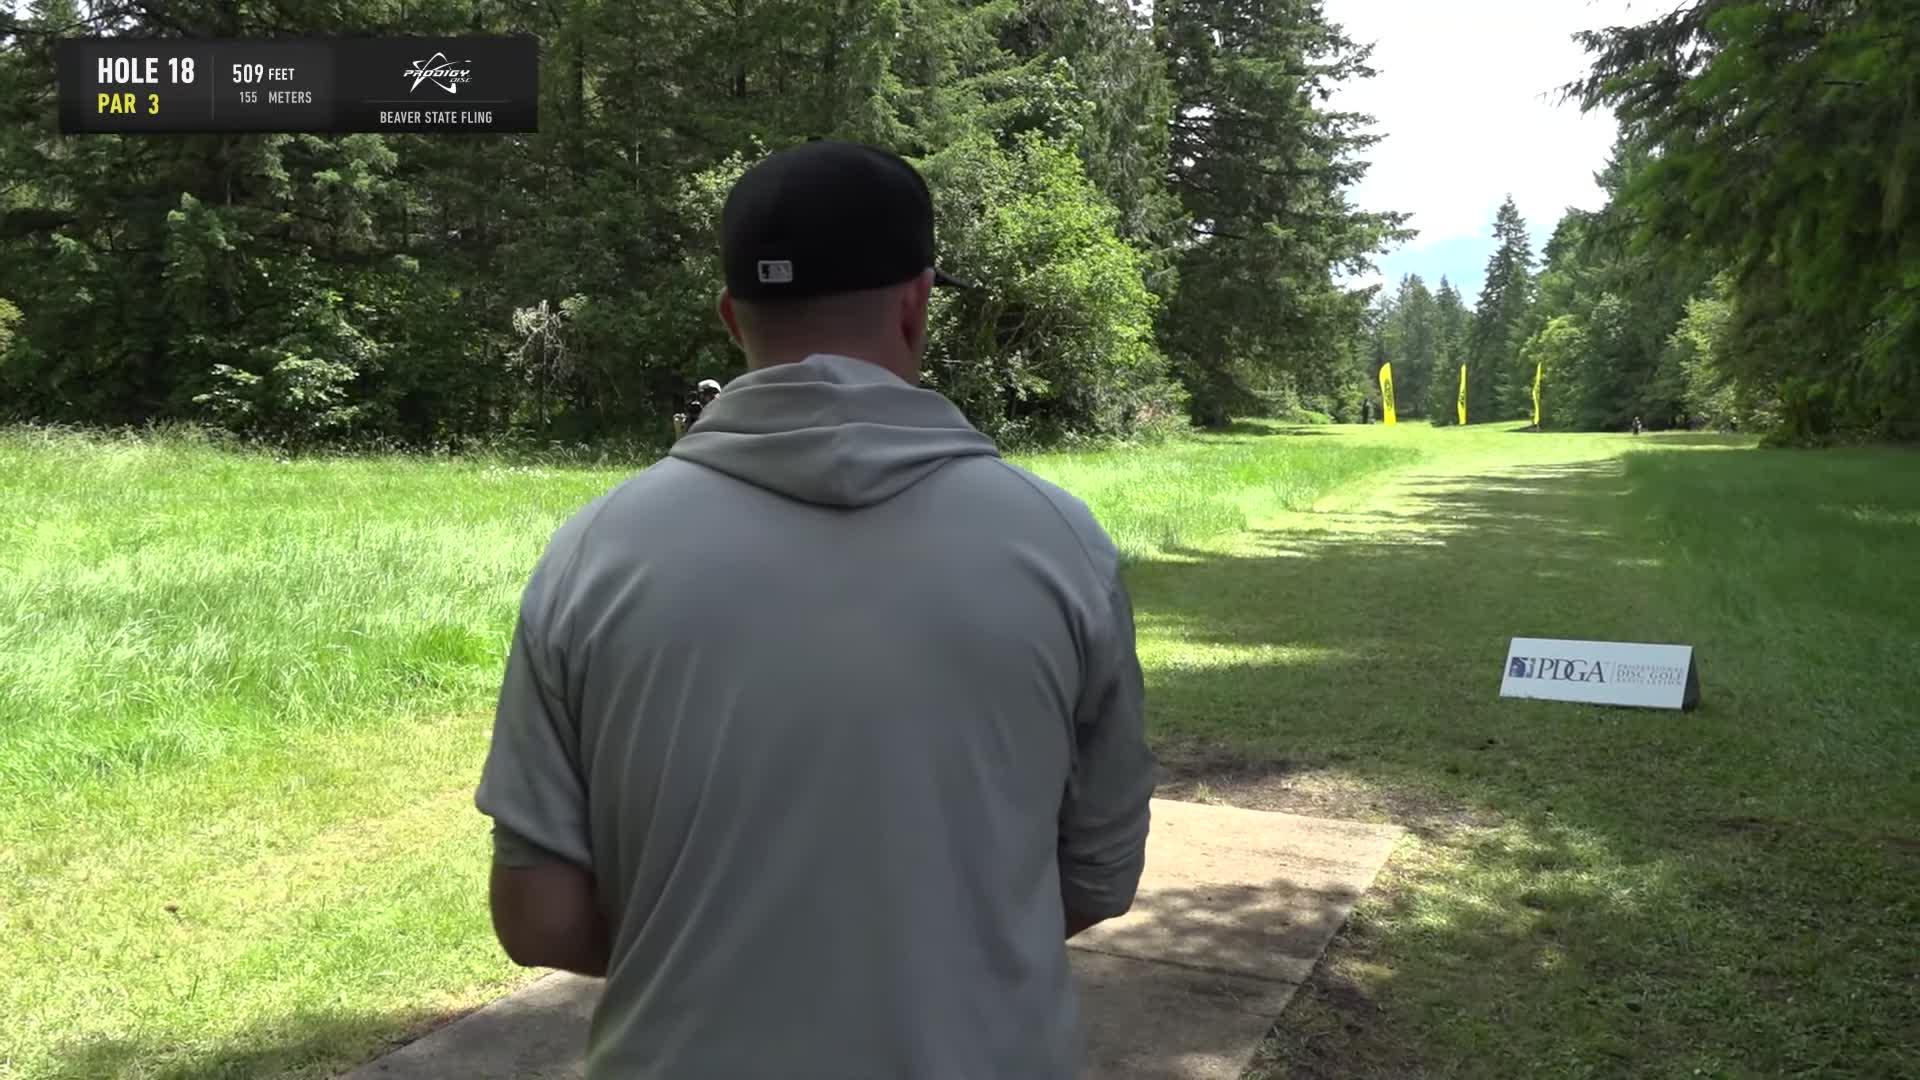 ace, bsf, dela, delaveaga, dgpt, dgwt, disc, disc golf, frolf, hole in one, masters cup, mcbeast, milo, nate sexton, nt, paul mcbeth, pdga, simon lizotte, tournament, worlds, 2019 Beaver State Fling - Round 1 Part 2 - Scott Withers hole 18 roller drive GIFs